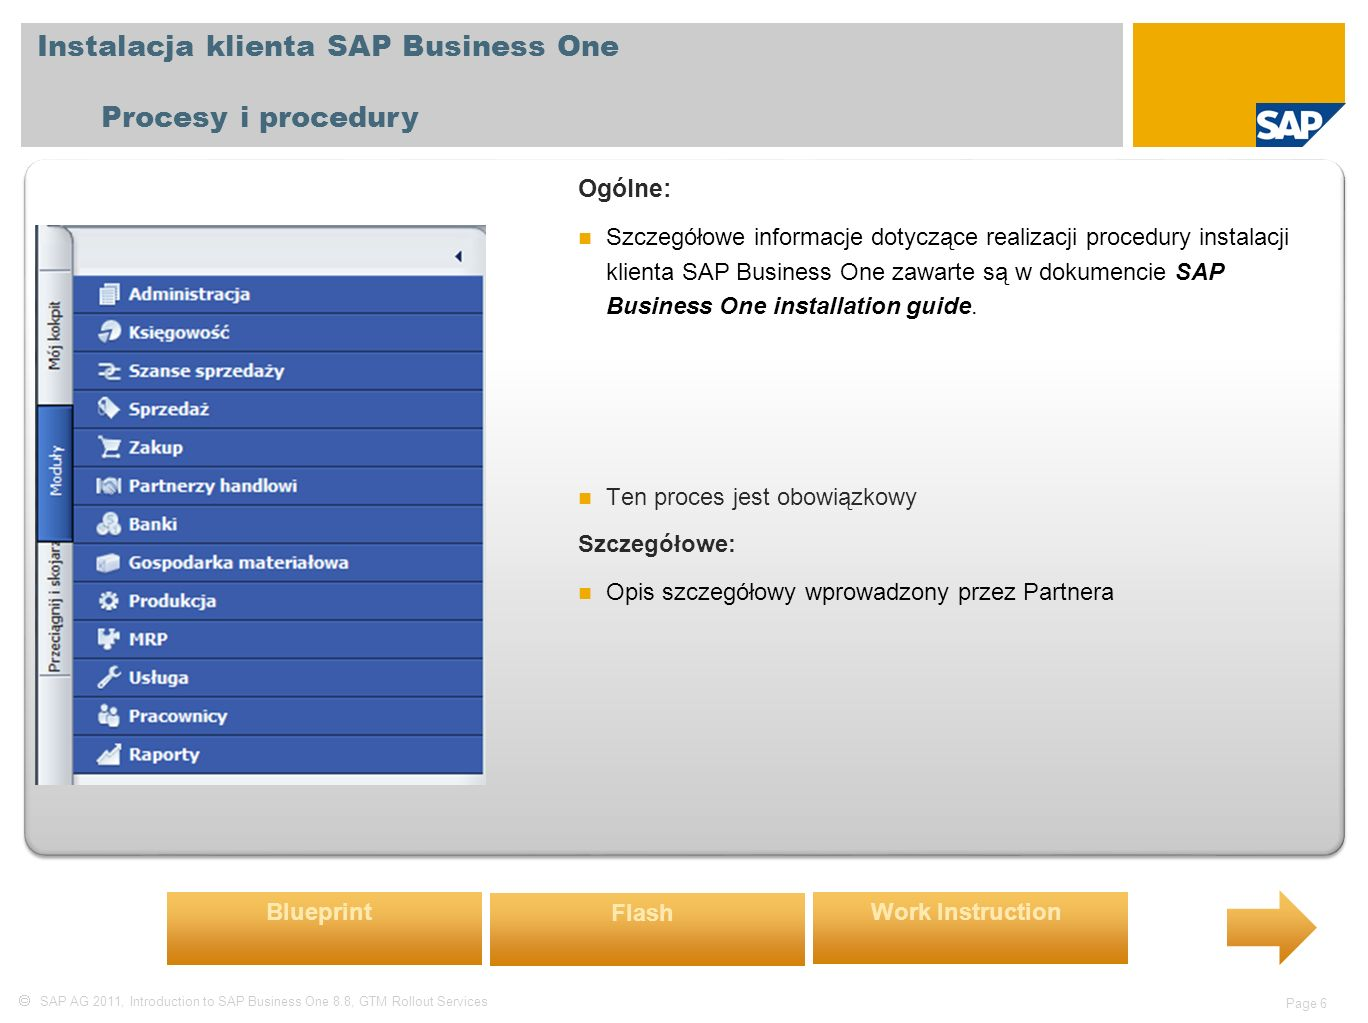  SAP AG 2011, Introduction to SAP Business One 8.8, GTM Rollout Services Page 6 Instalacja klienta SAP Business One Procesy i procedury Ogólne: Szcze